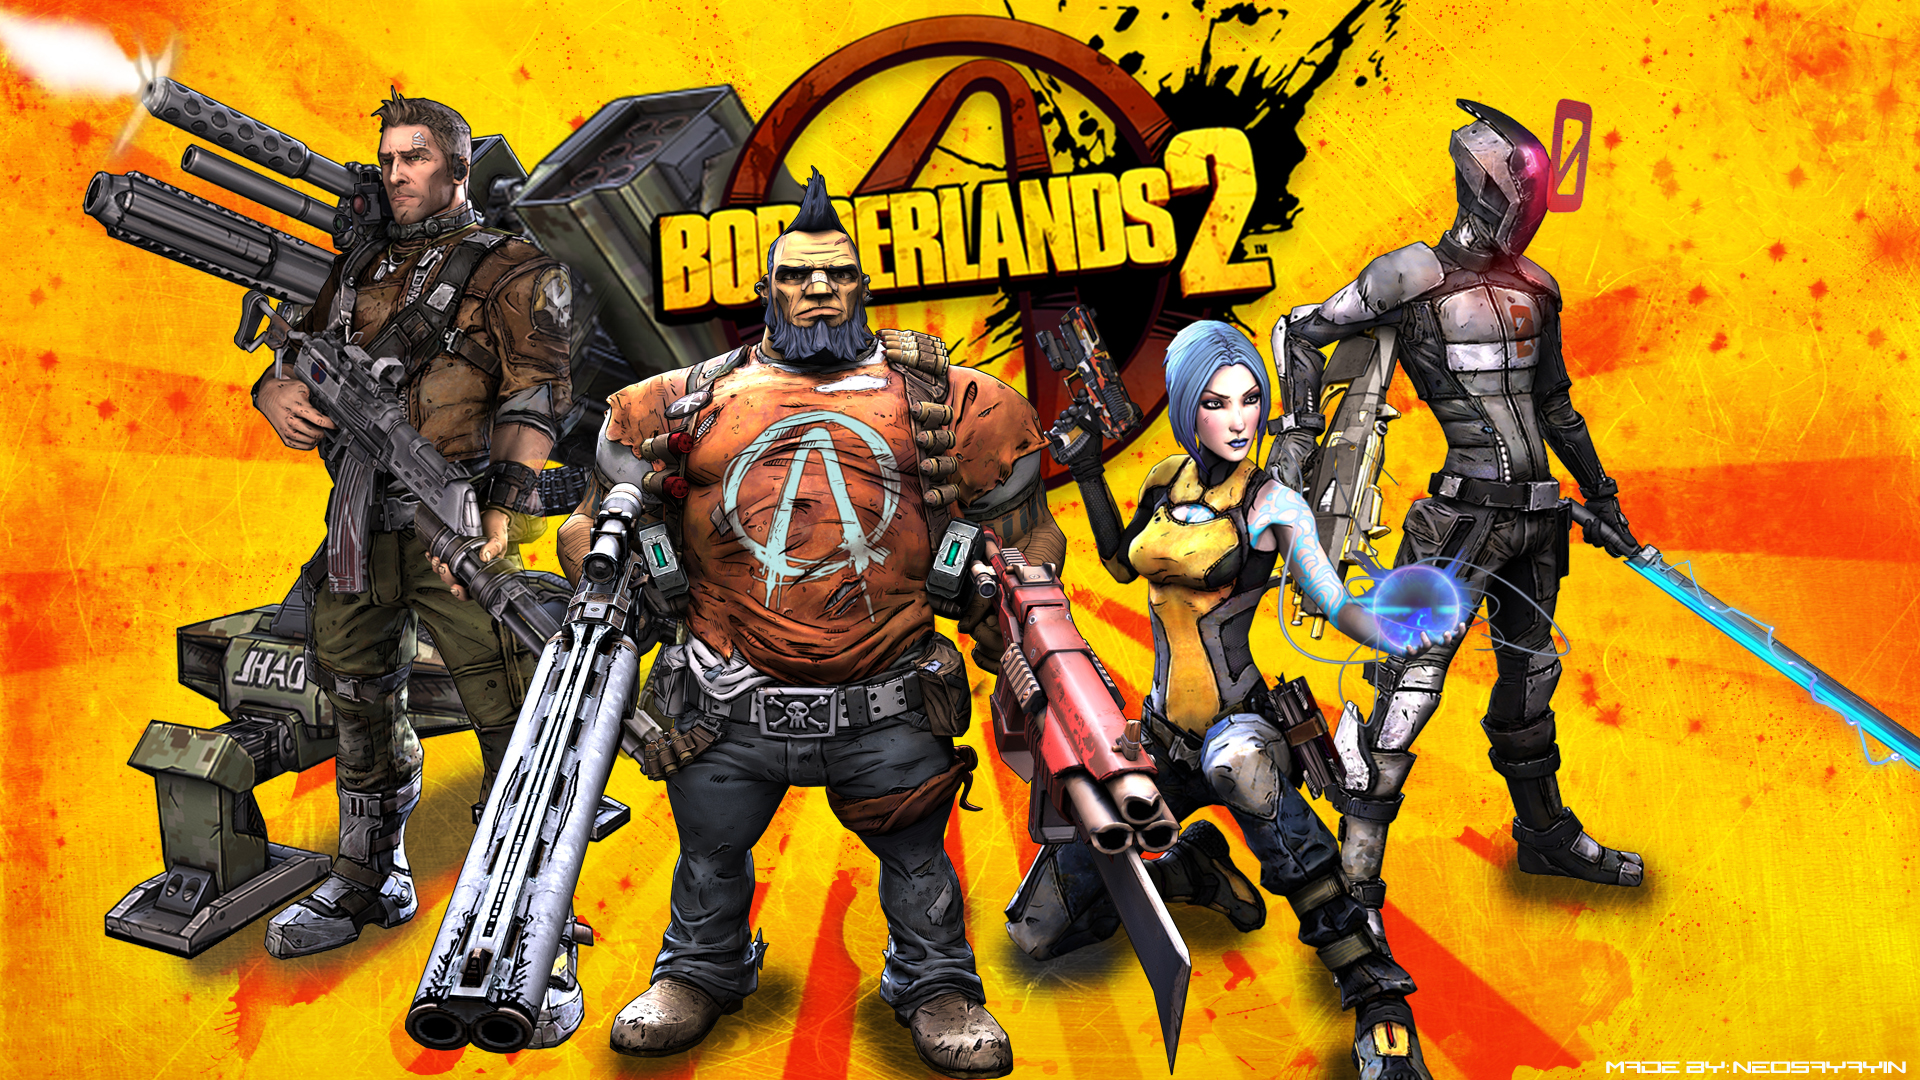 Borderlands 2 telecharger gratuit de PC et Torrent